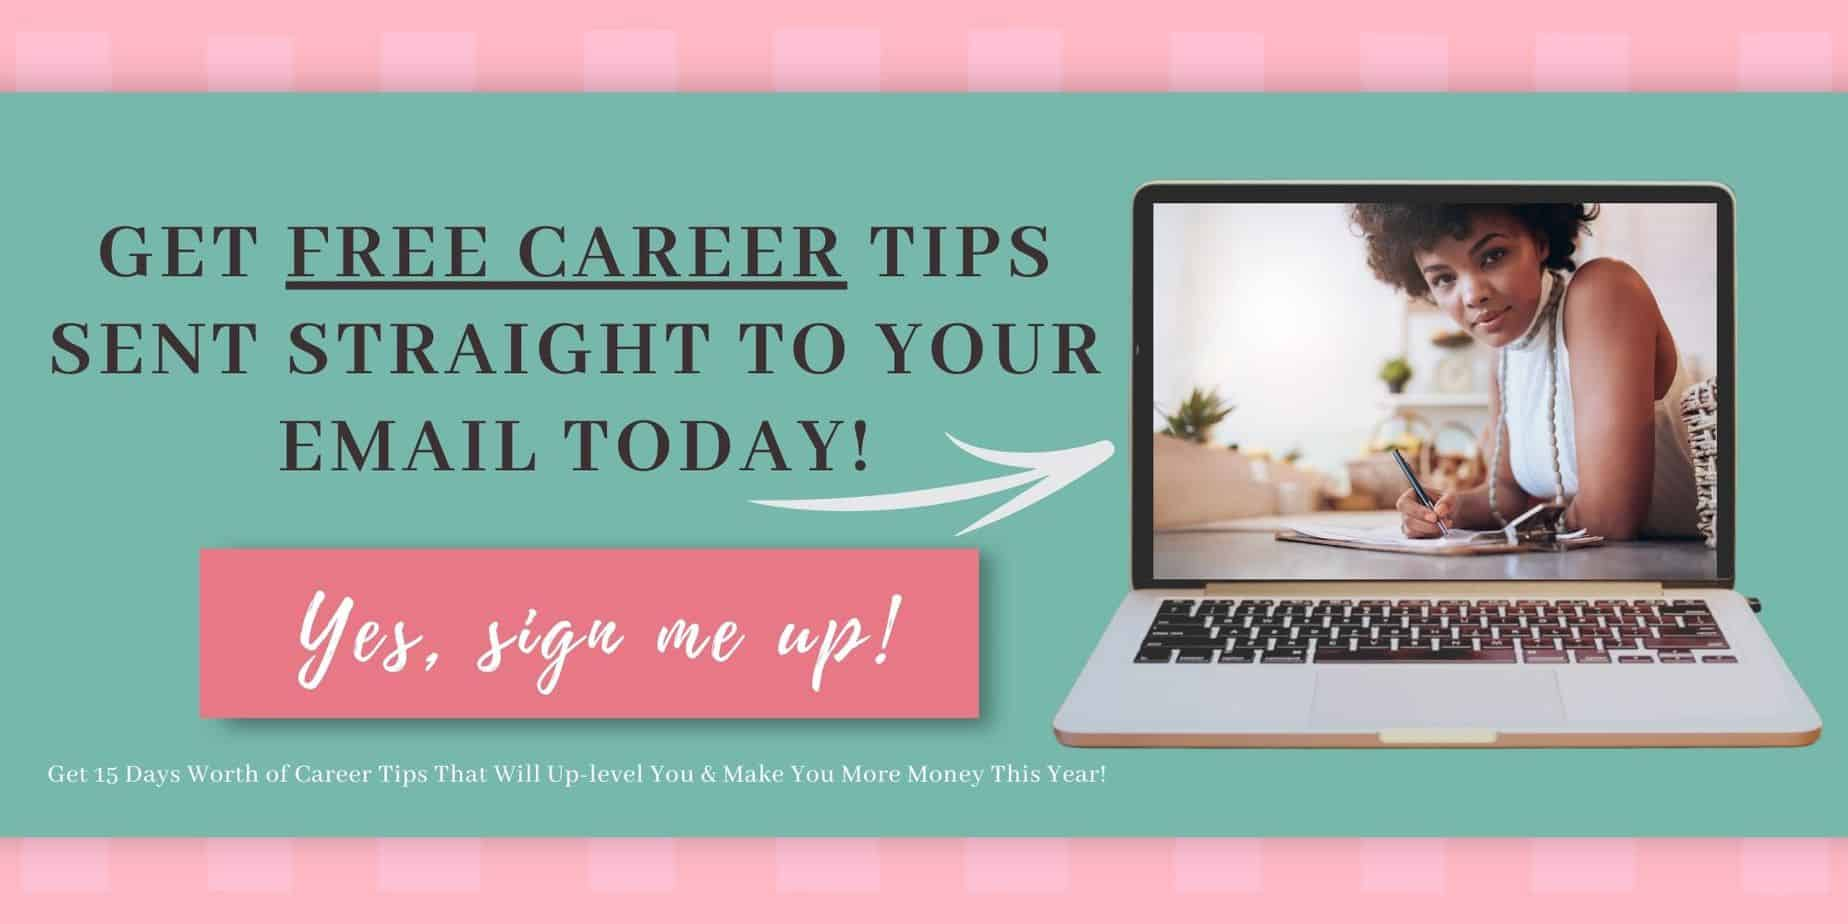 Career advice for women to help growth!